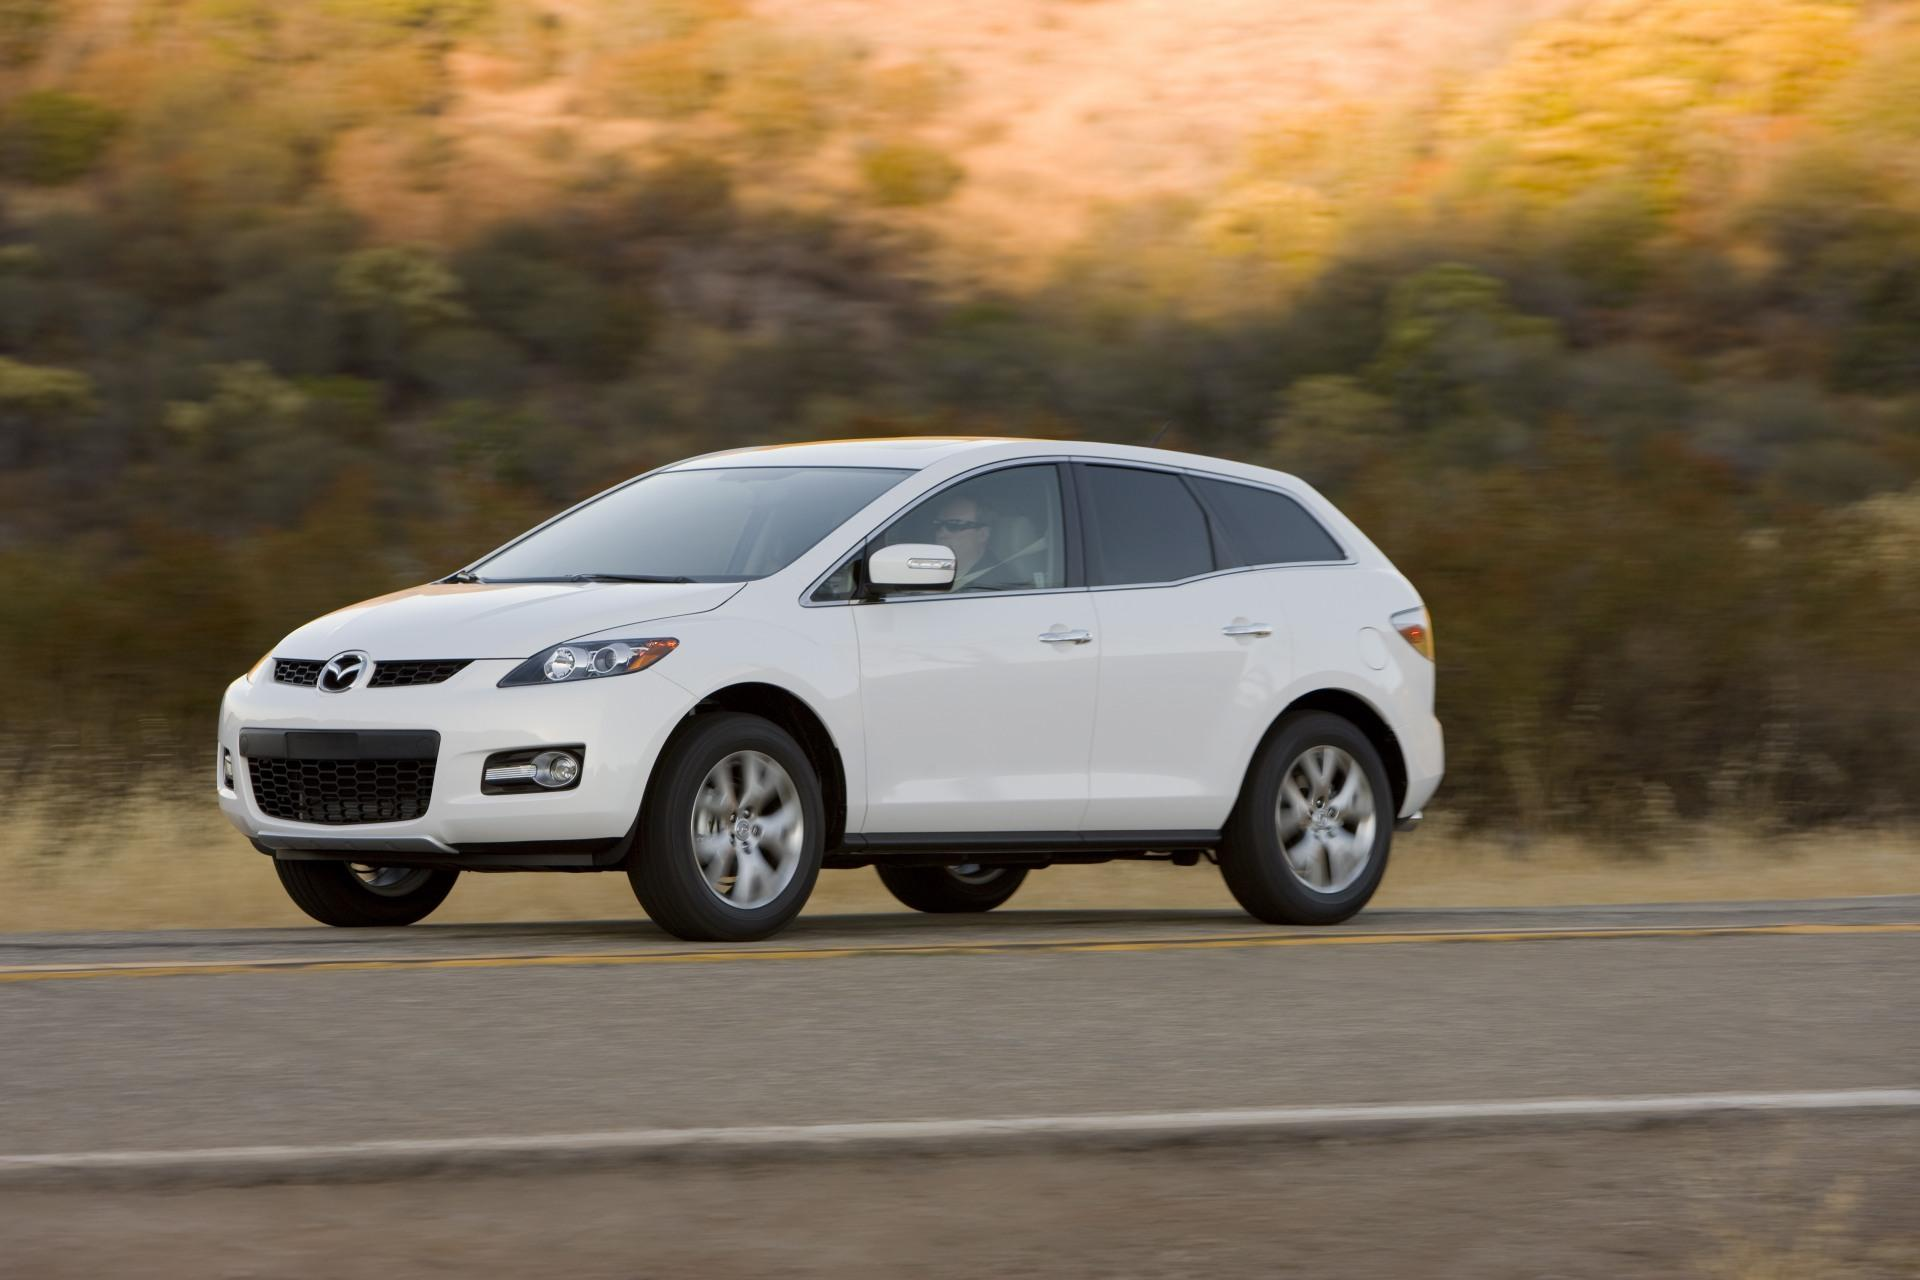 Calendar Monthly Overview : Mazda cx news and information conceptcarz